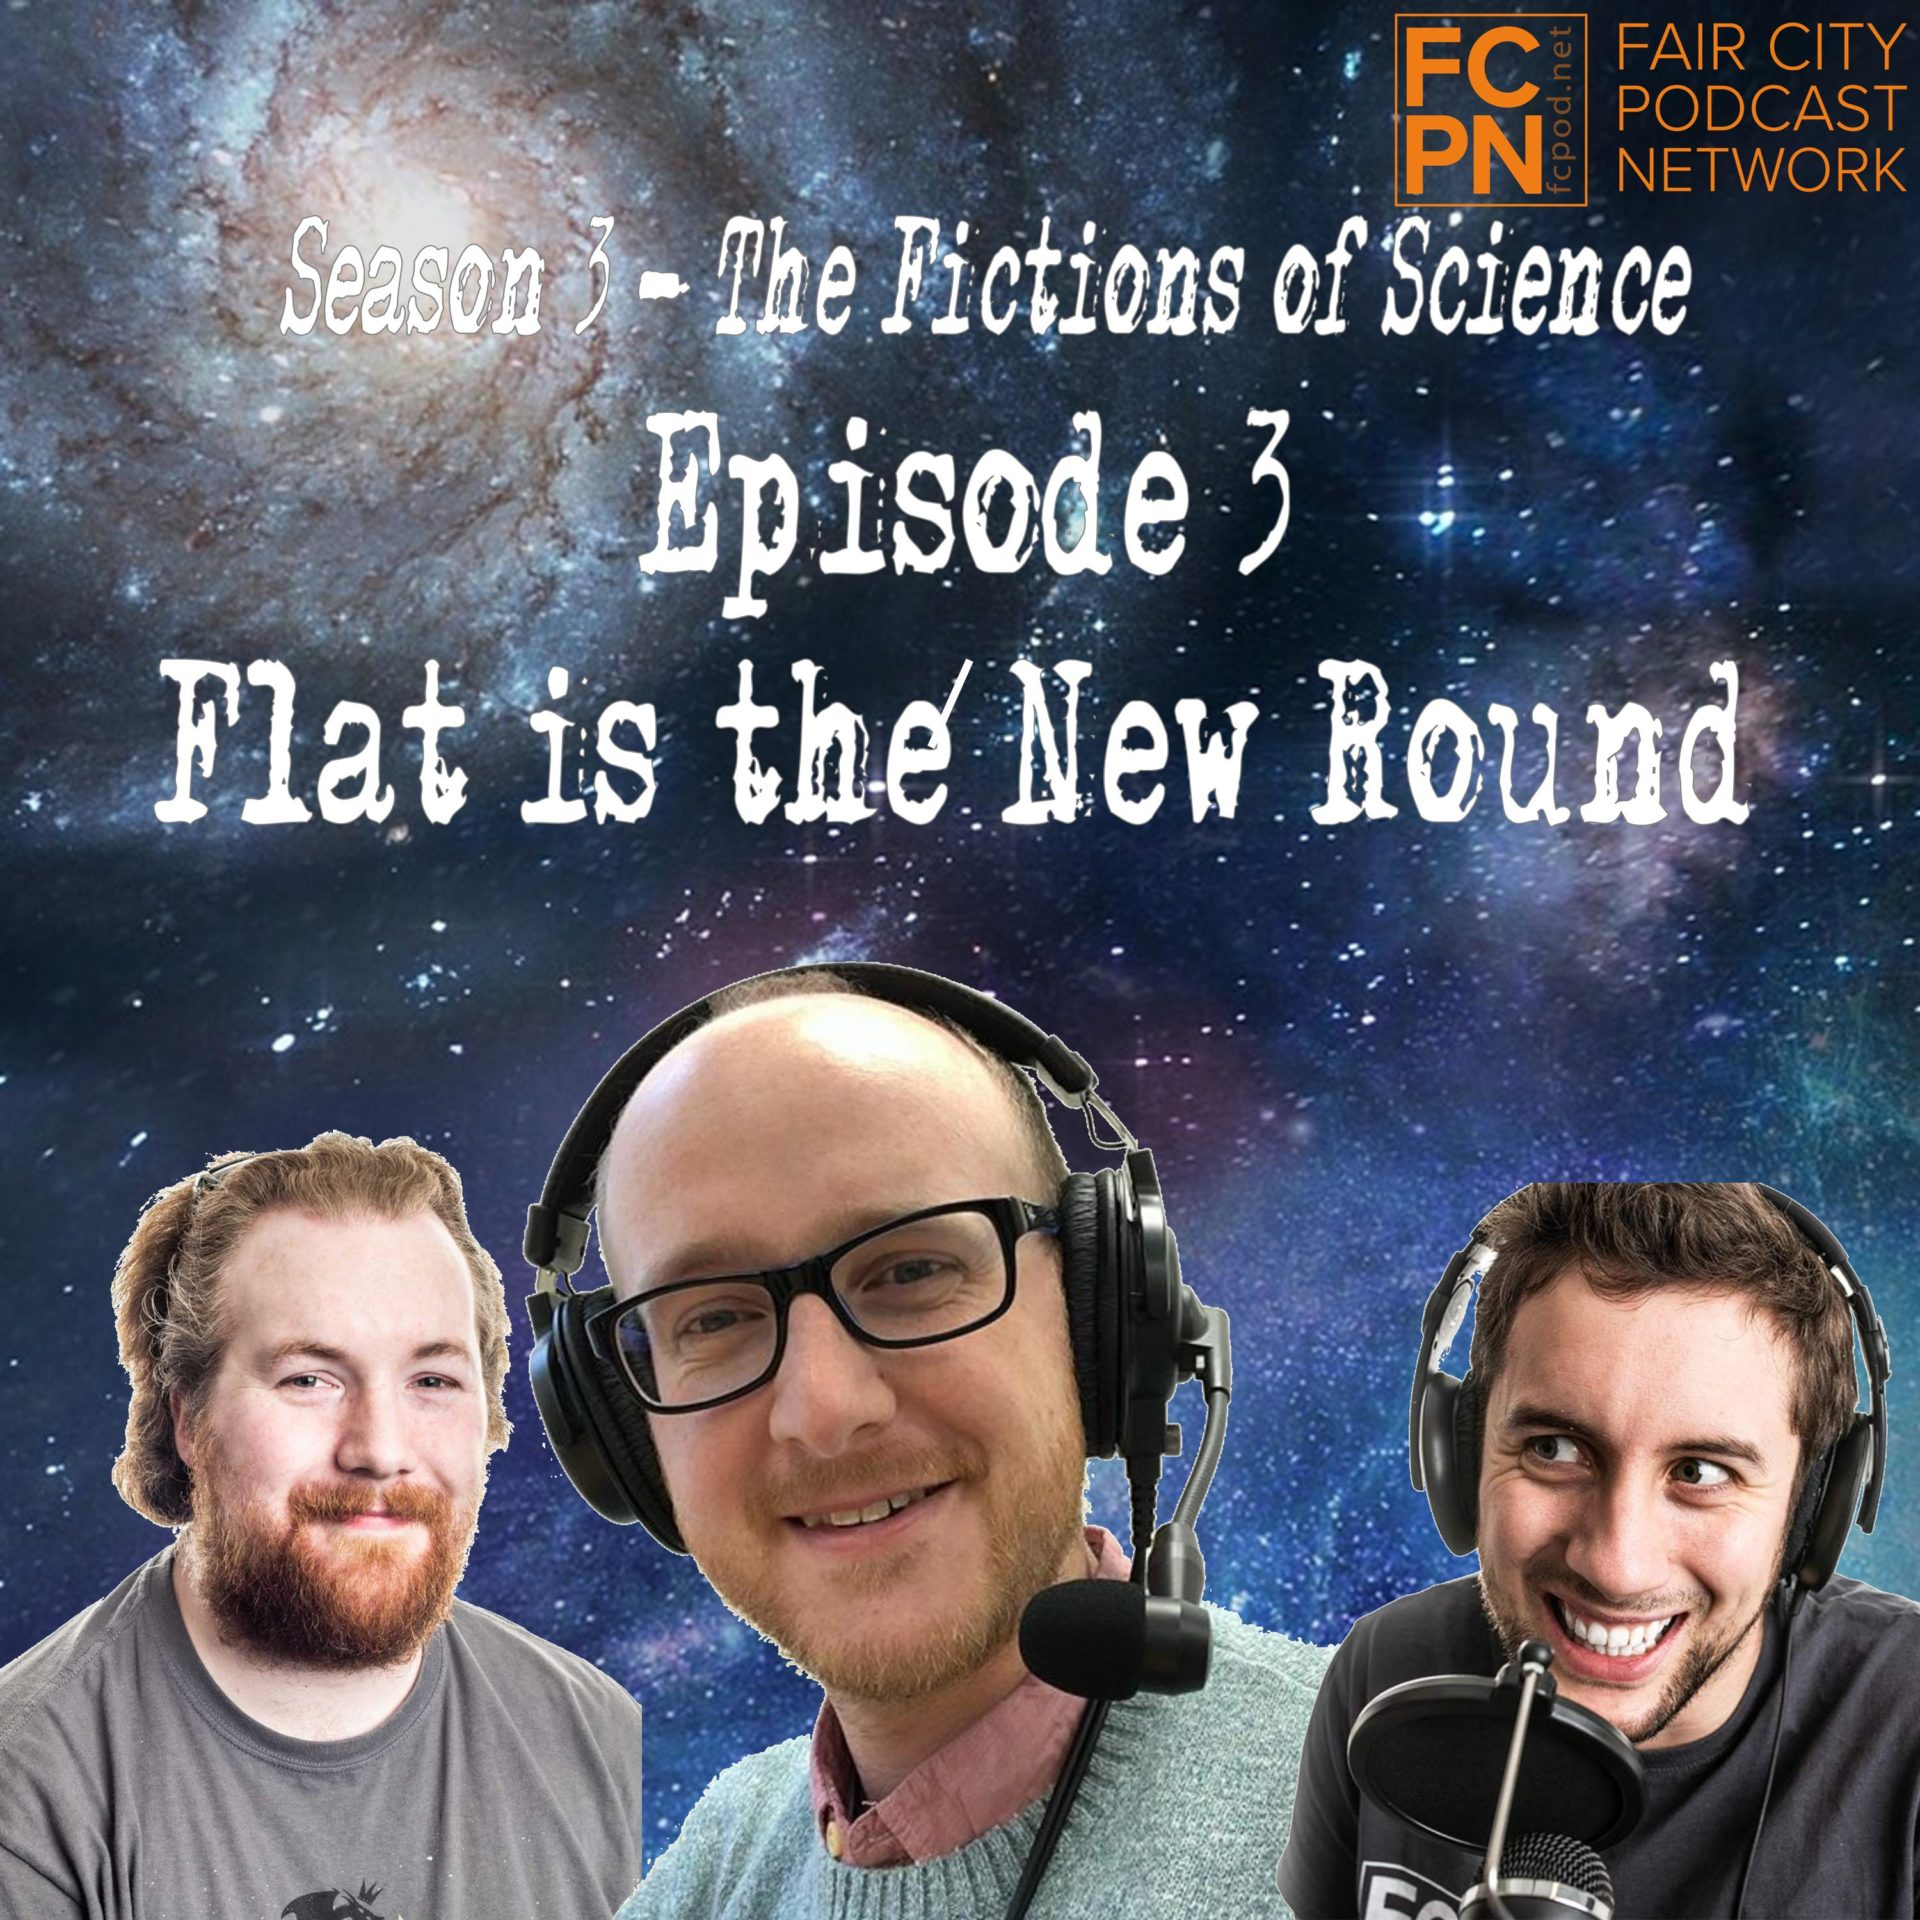 Season 3 Episode 3 – Flat is the New Round